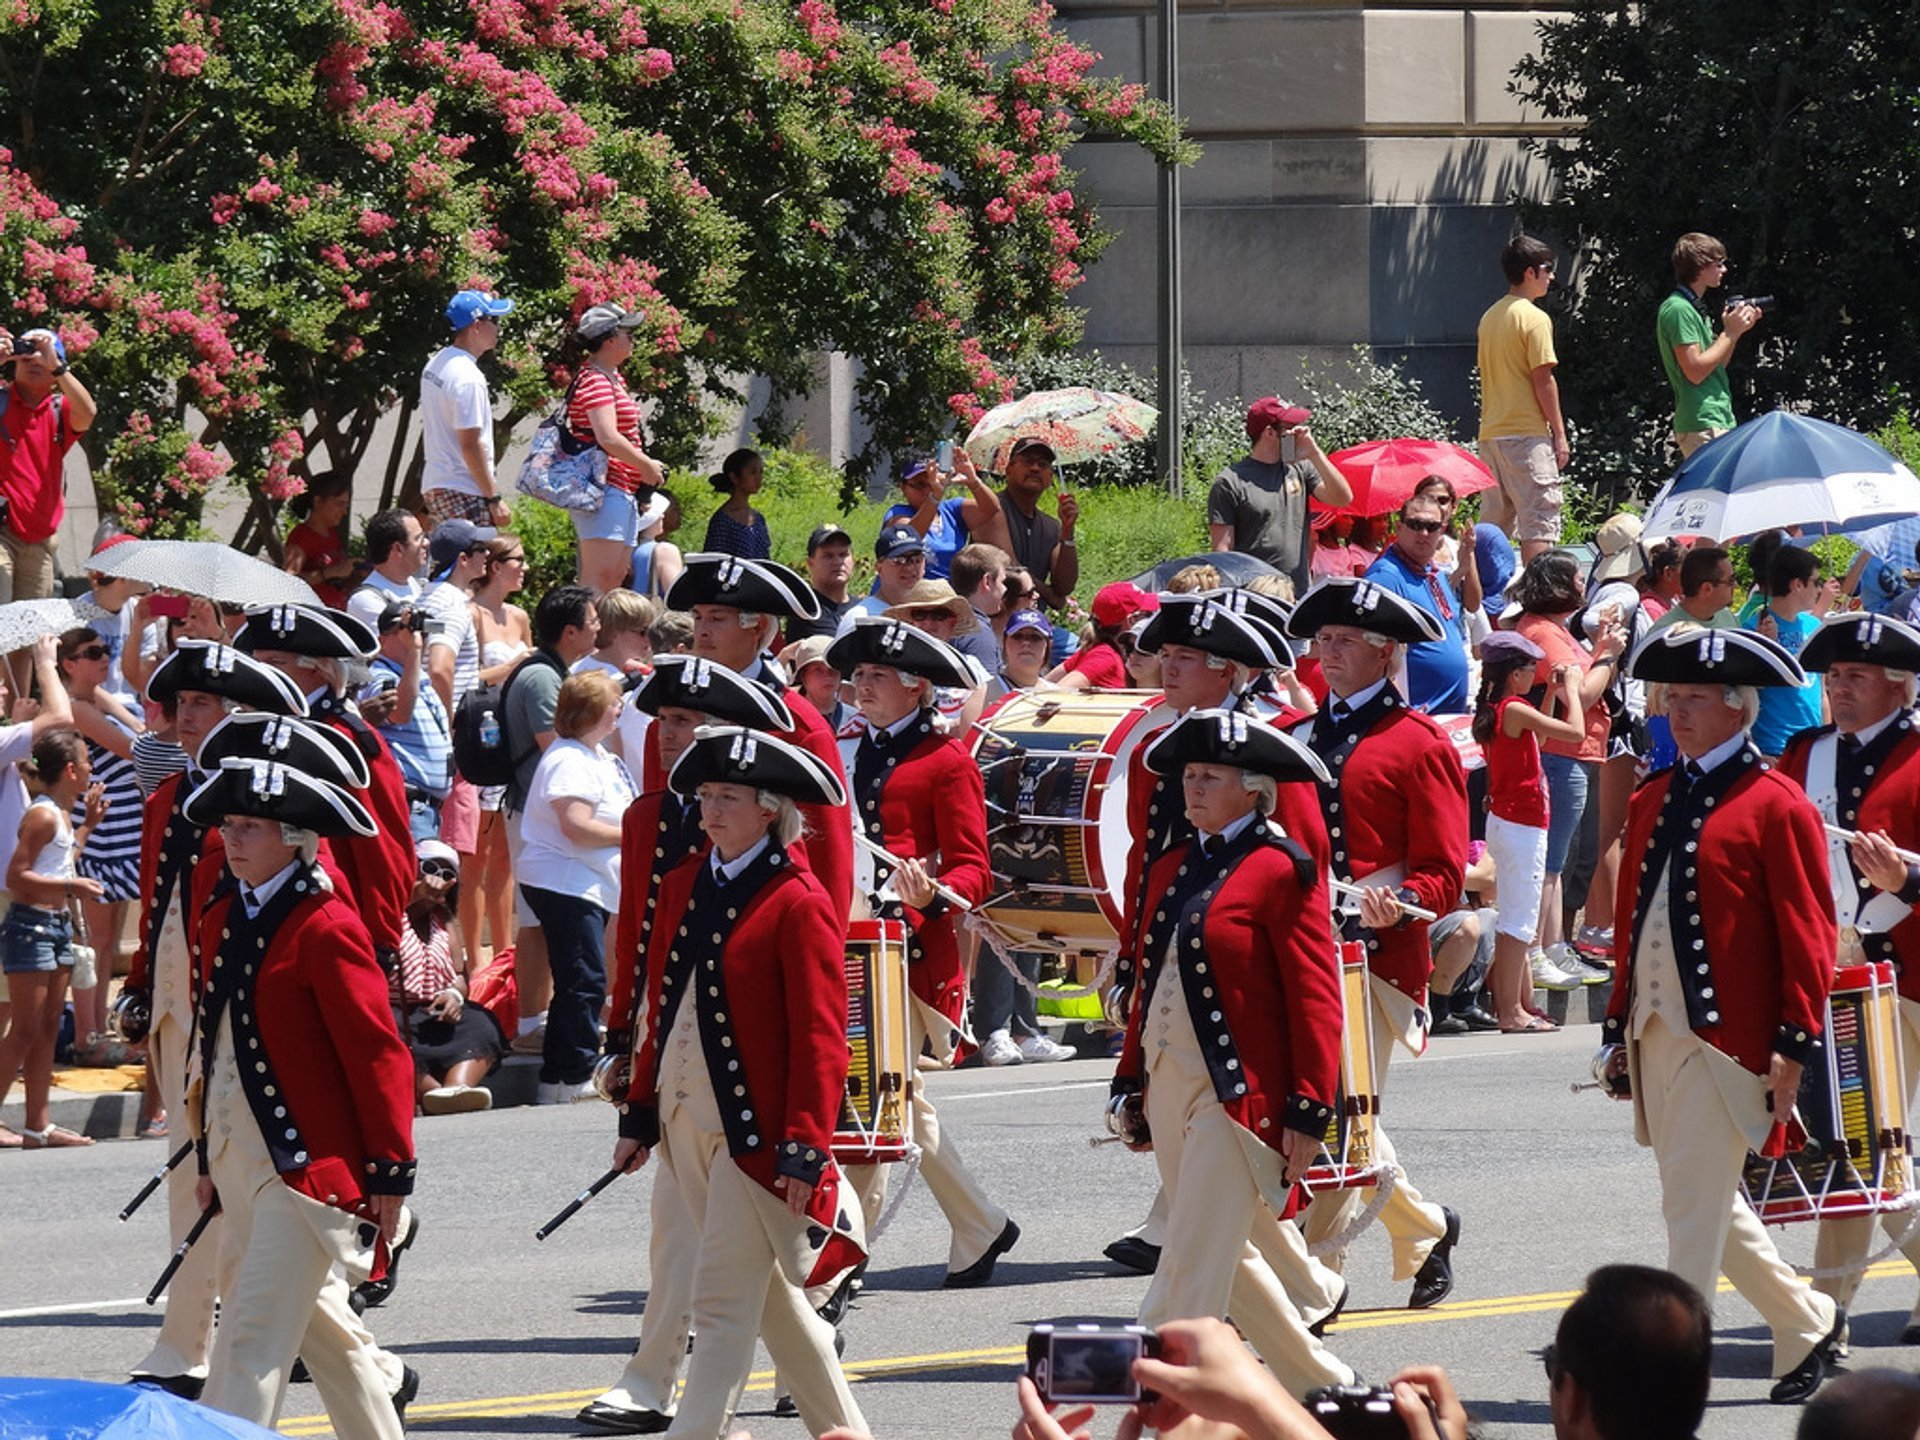 4th of July Concert, Parade & Fireworks in Washington, D.C. - Best Season 2020